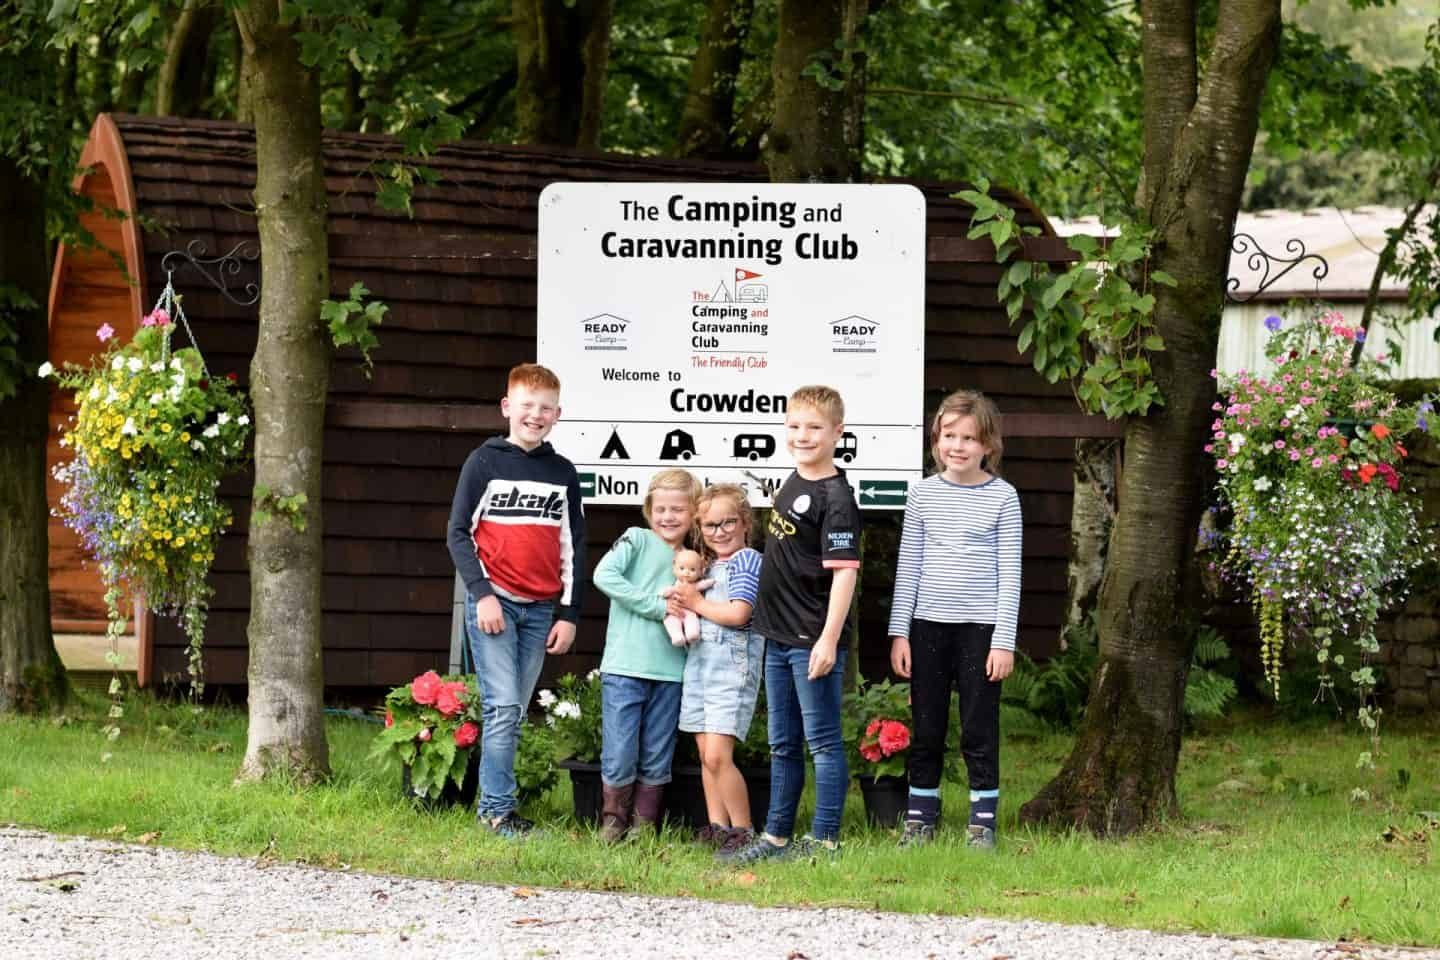 The Camping and Caravanning Club - Crowden